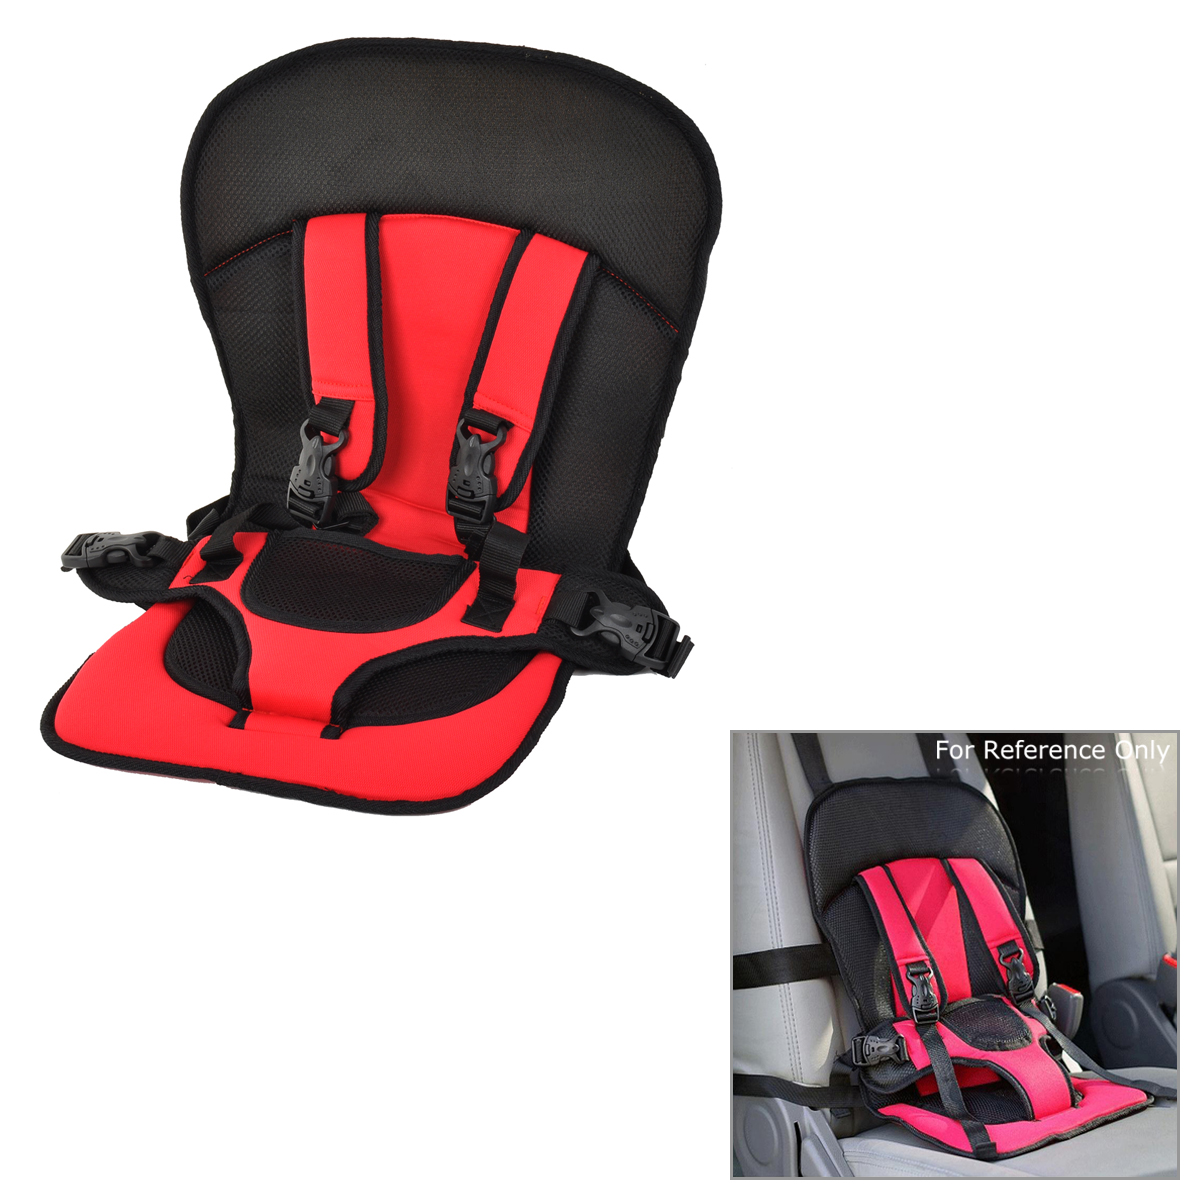 Child Multi-Functional Portable Car Safety Harness Pad Seat Cover Cushion With Adjustable Strap For Children Below 12 Years Old